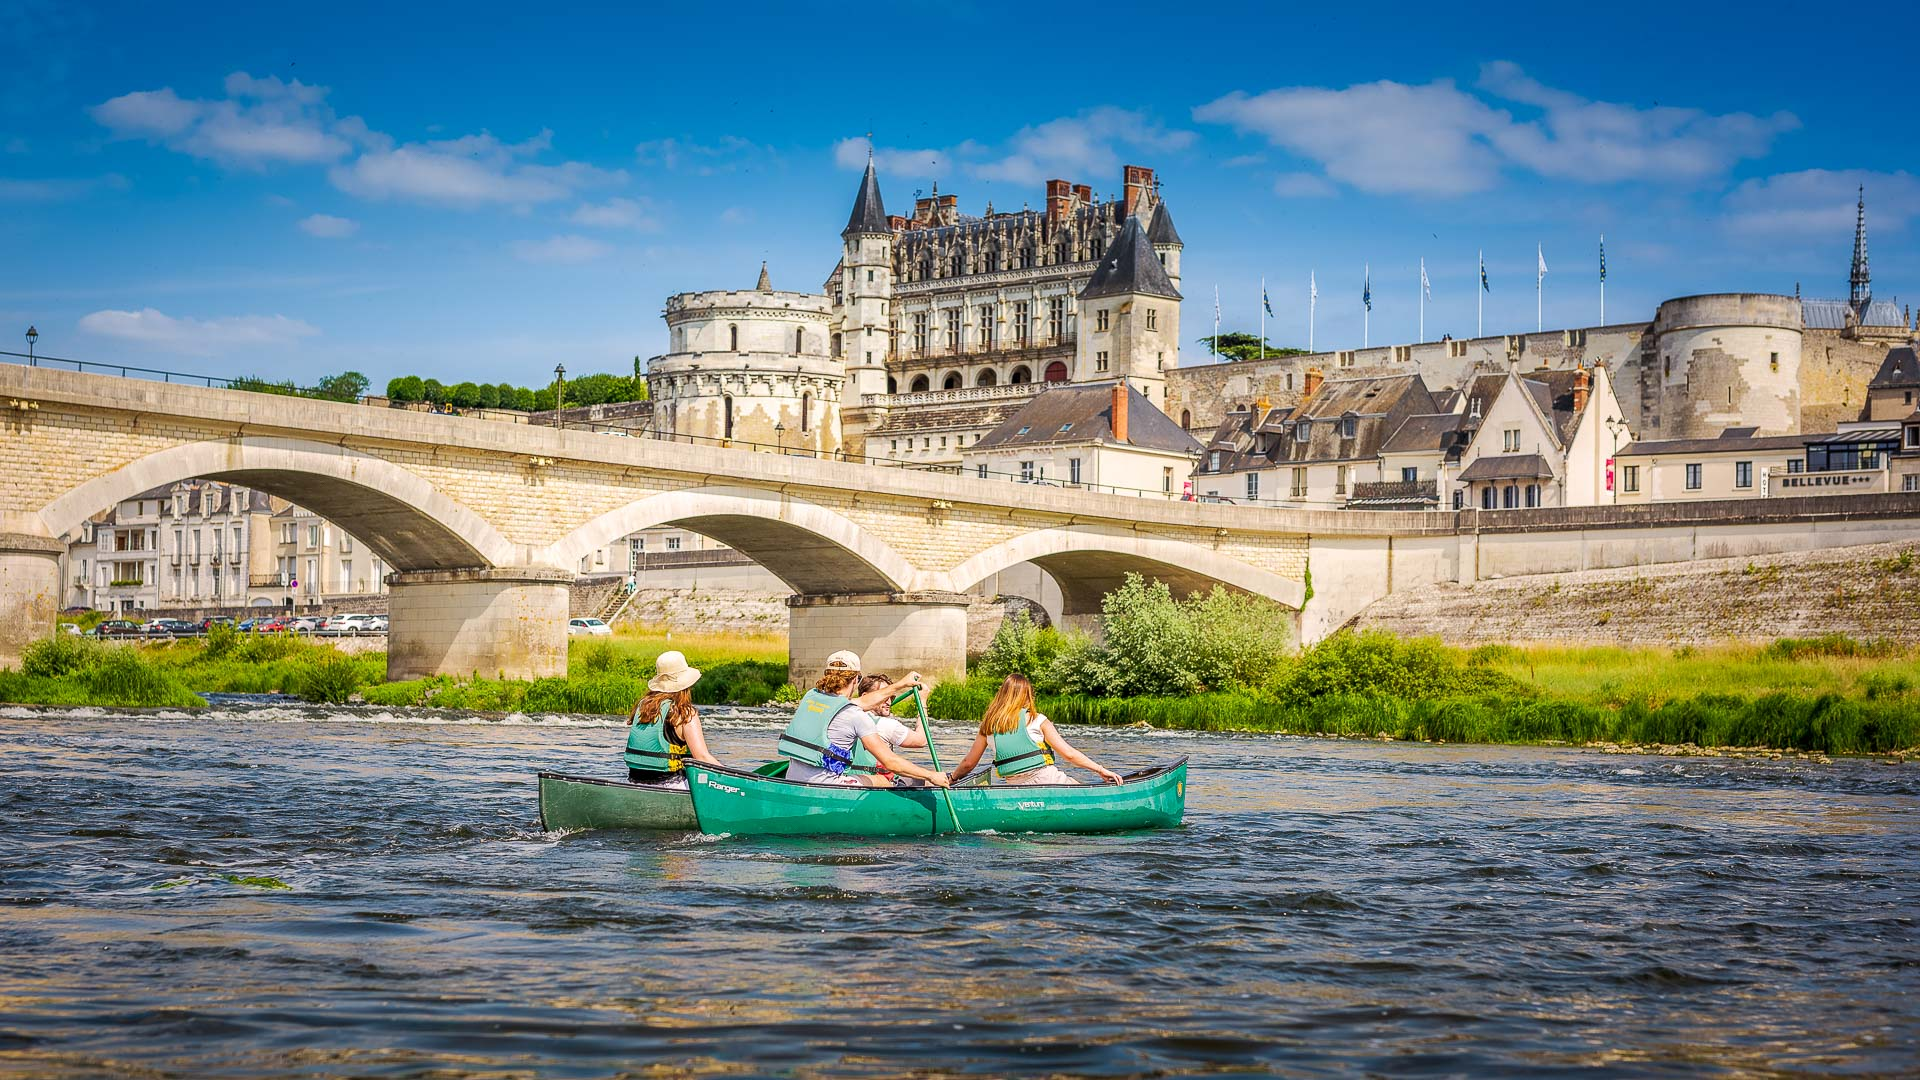 Canoeing on the Loire River, in Amboise